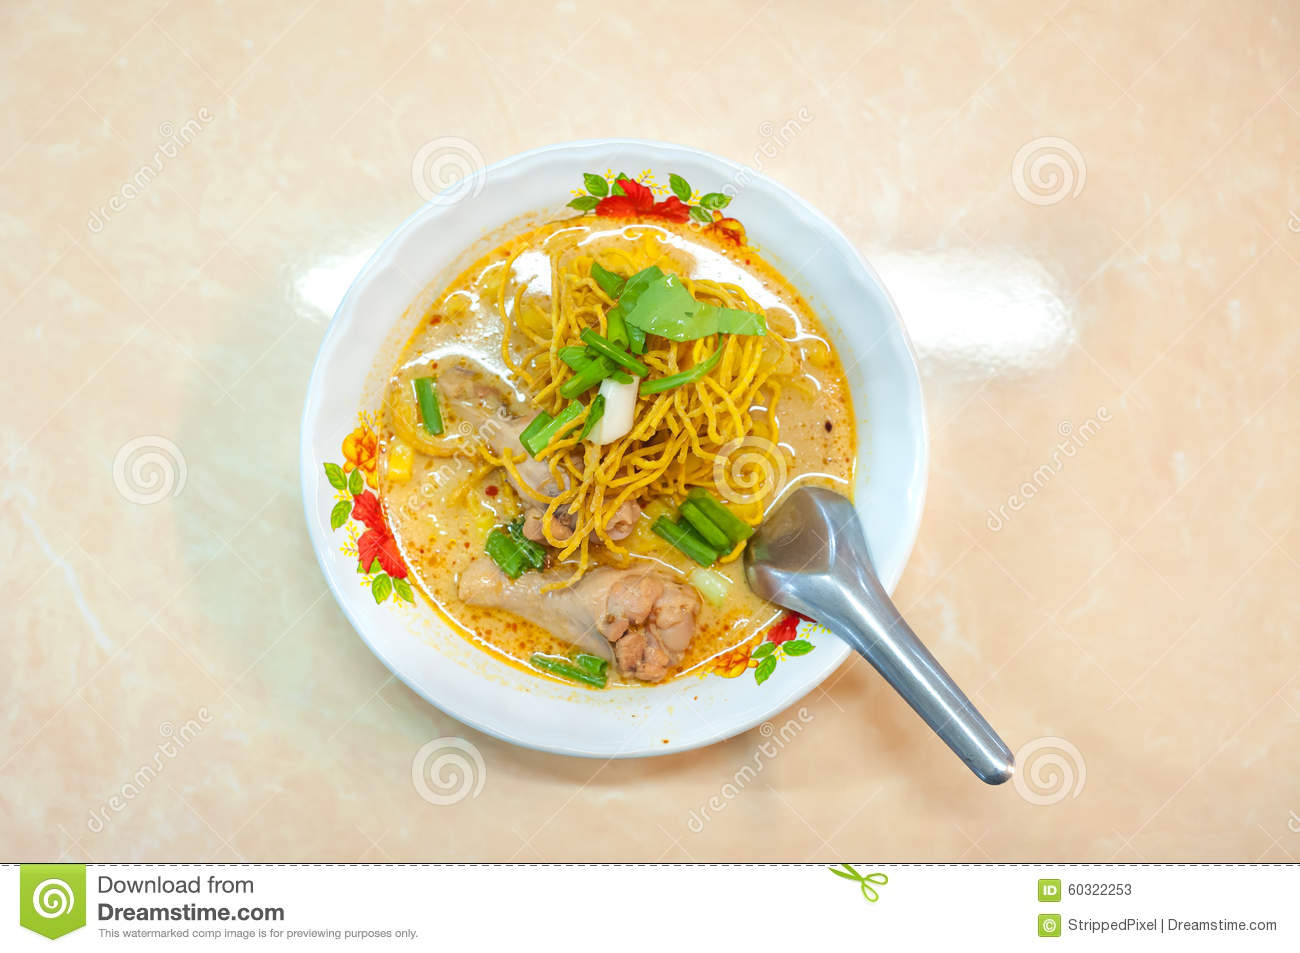 ... Mai restaurant on June 8, 2015. Khao soi is one of Chiang Mai's most